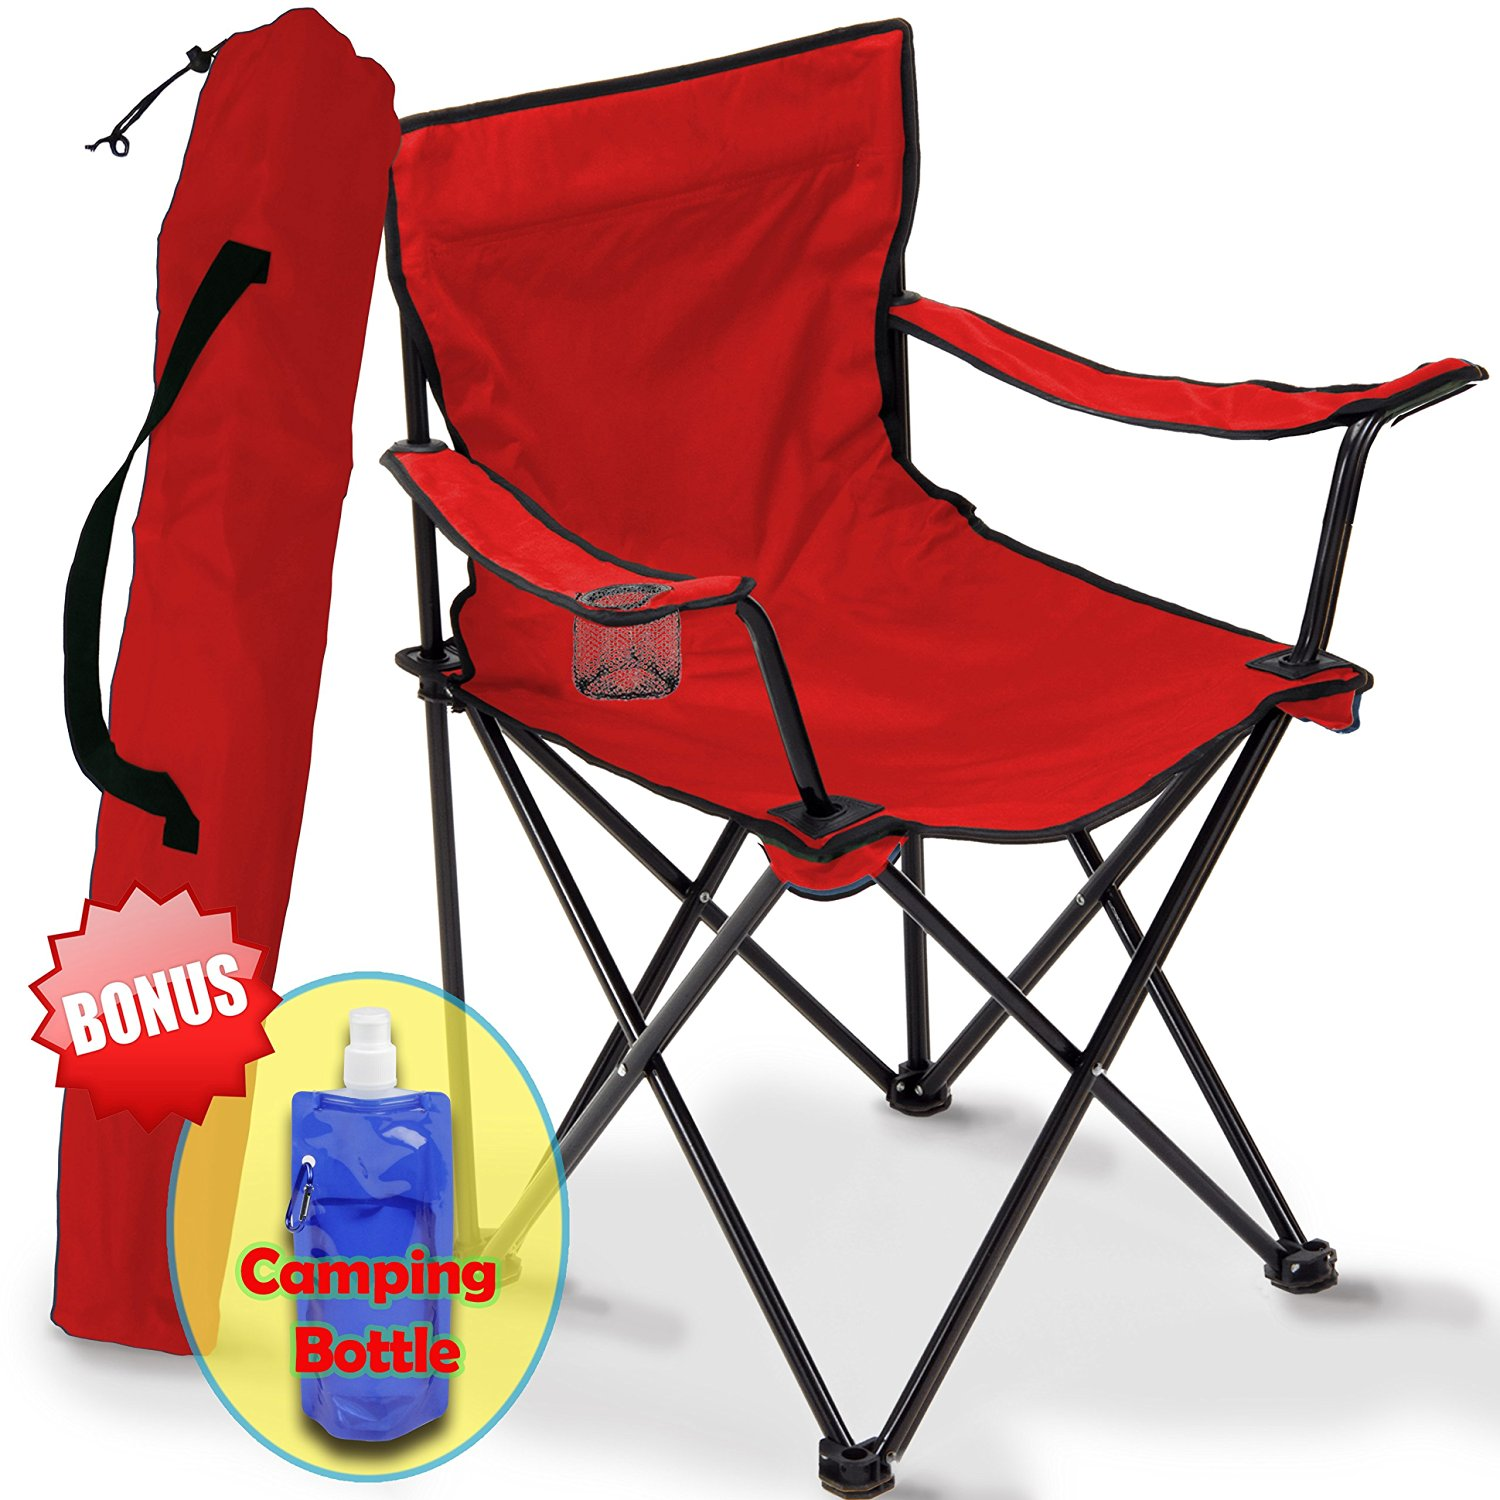 Captivating Camping Chair Folding, Portable Carry Bag For Storage And Travel, Best  Durable Outdoor Quad